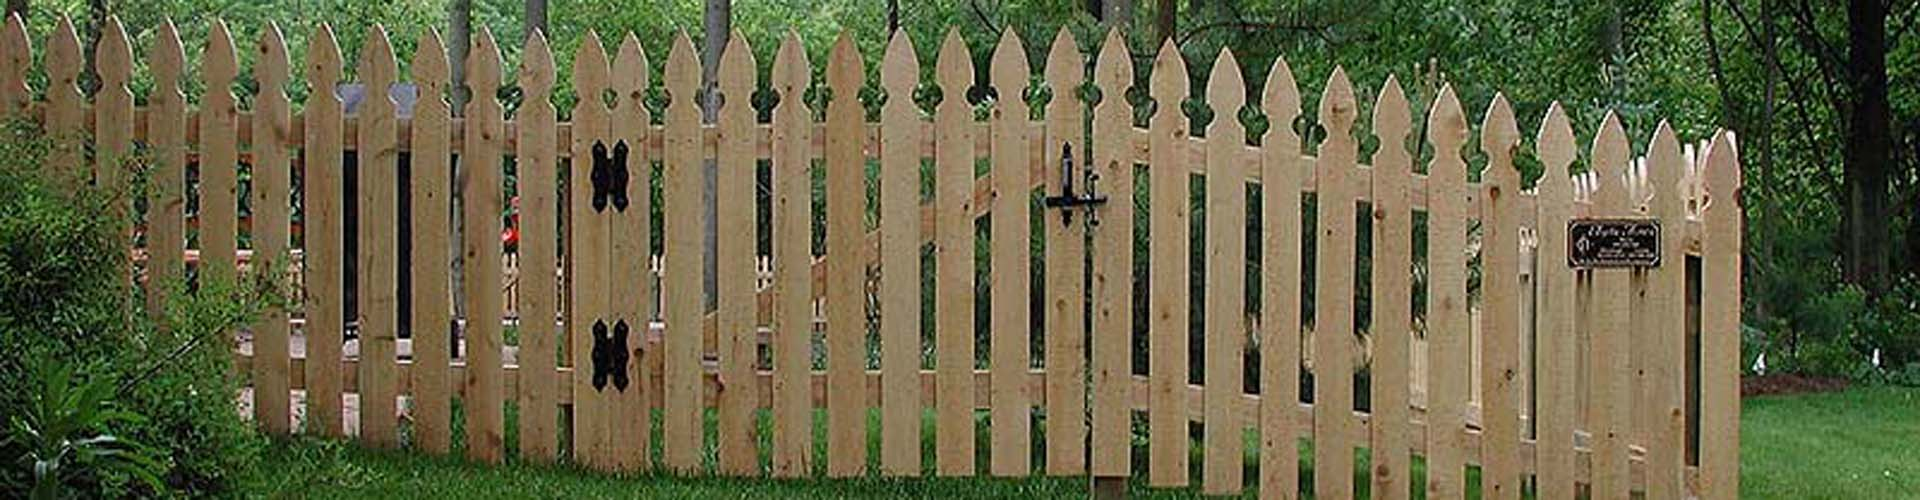 Standard Runner Cedar Privacy And Picket Fence Designs By The